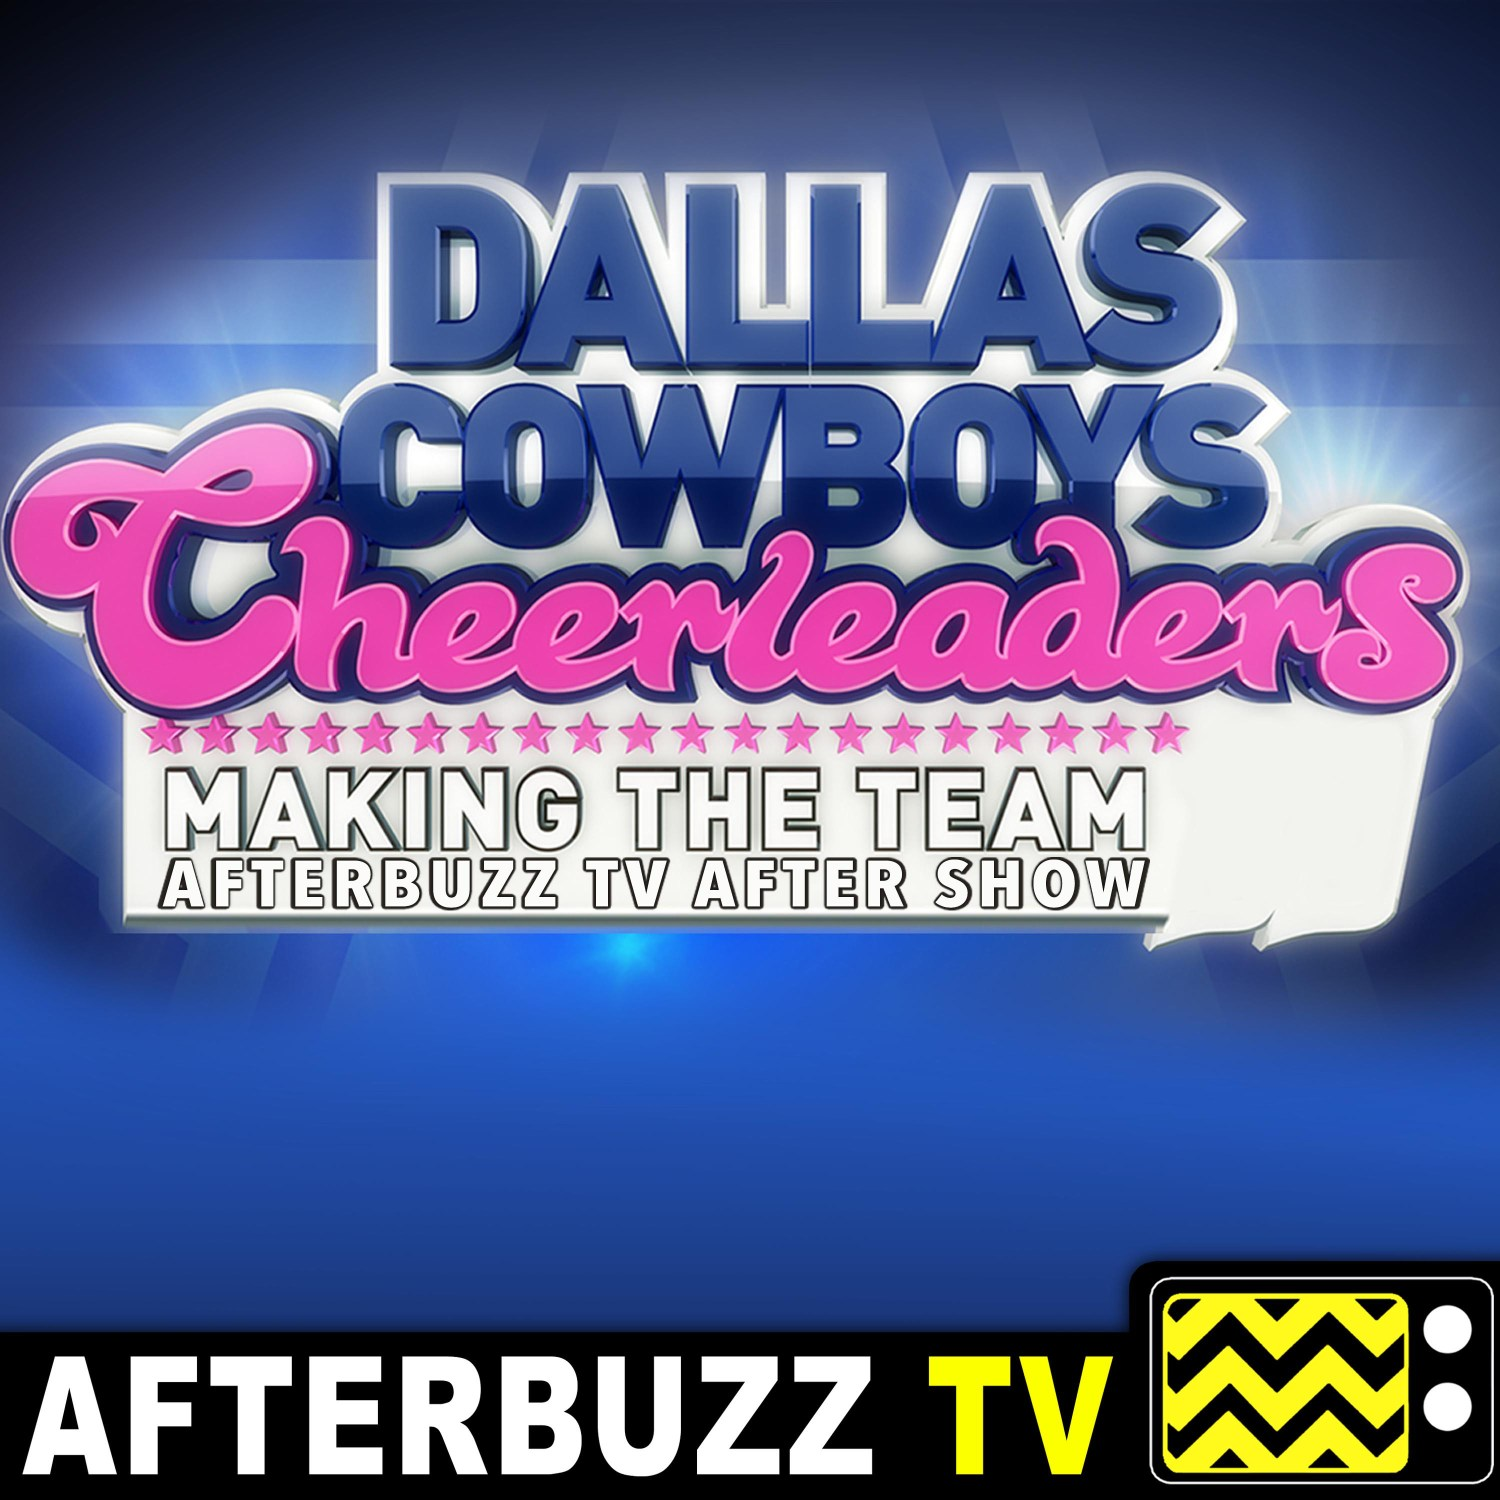 The Dallas Cowboys Cheerleaders Podcast